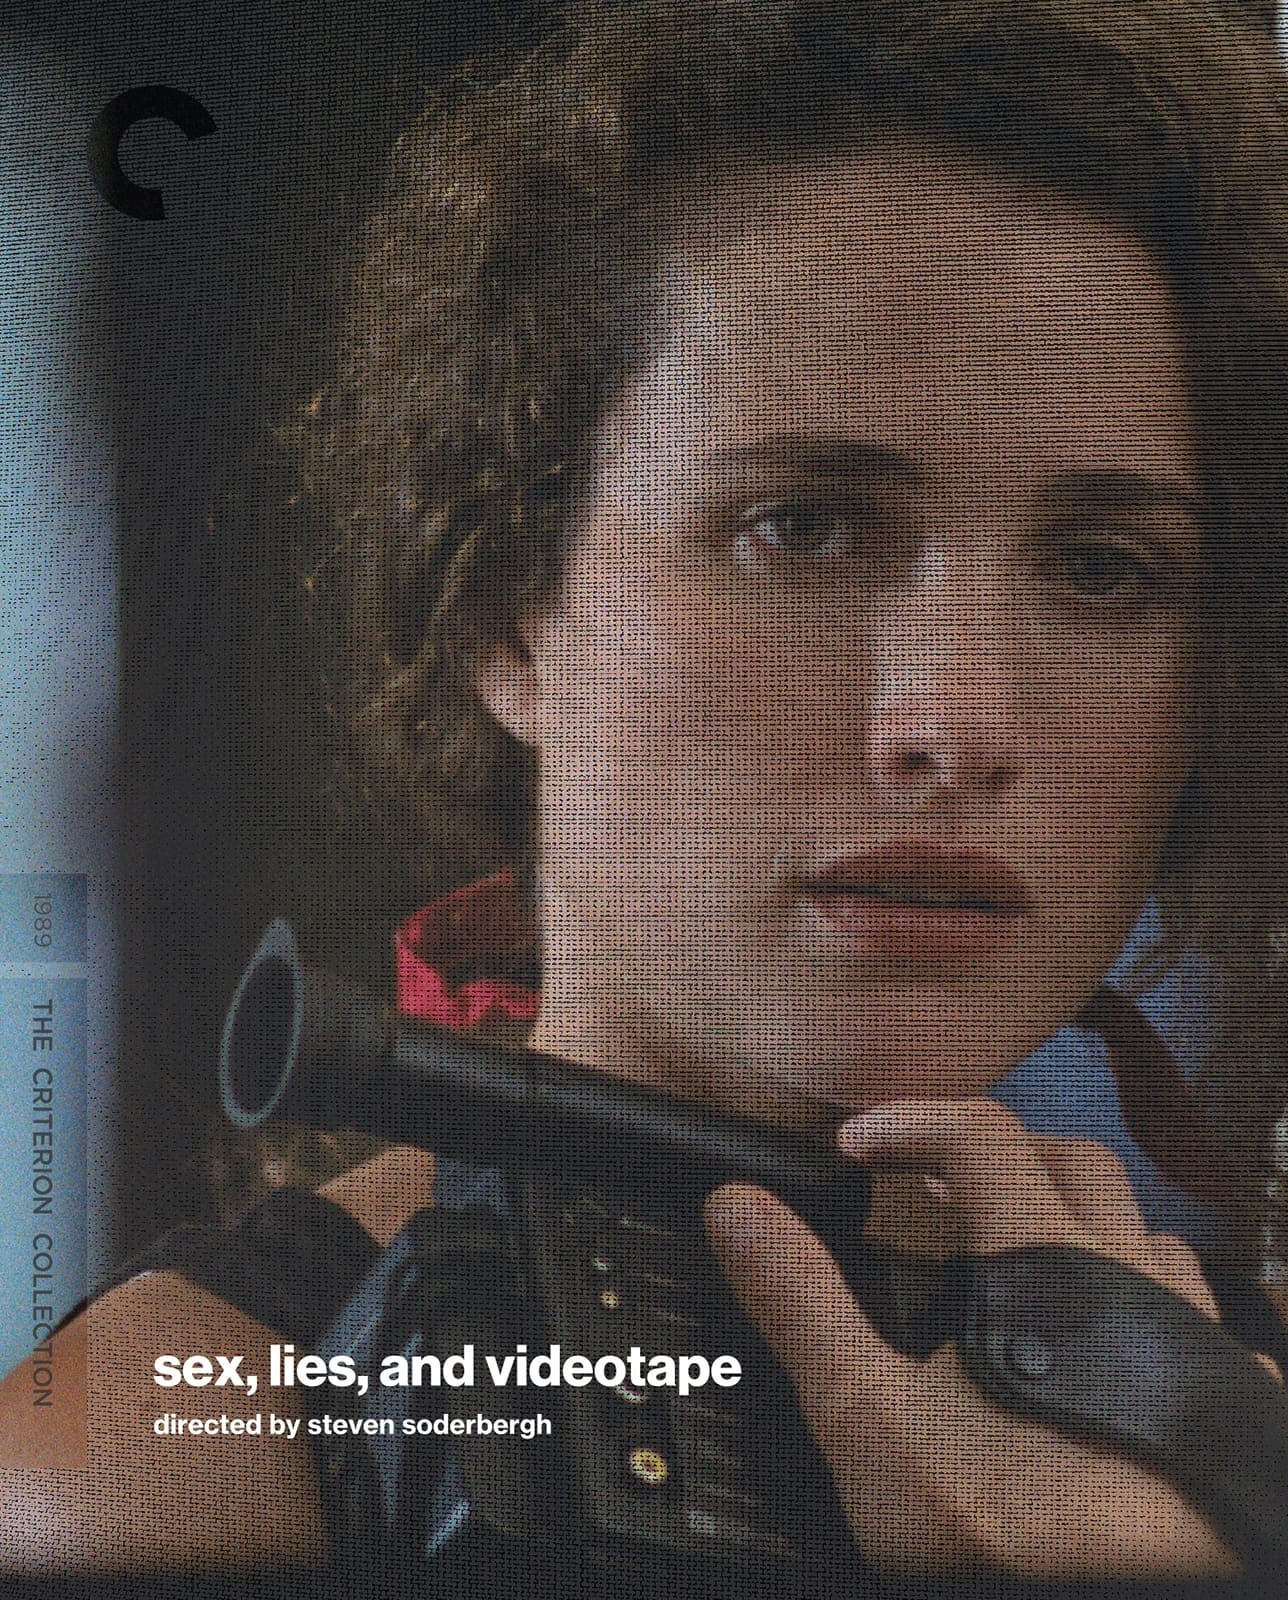 Sex, Lies, and Videotape (The Criterion Collection)(1989) Blu-ray